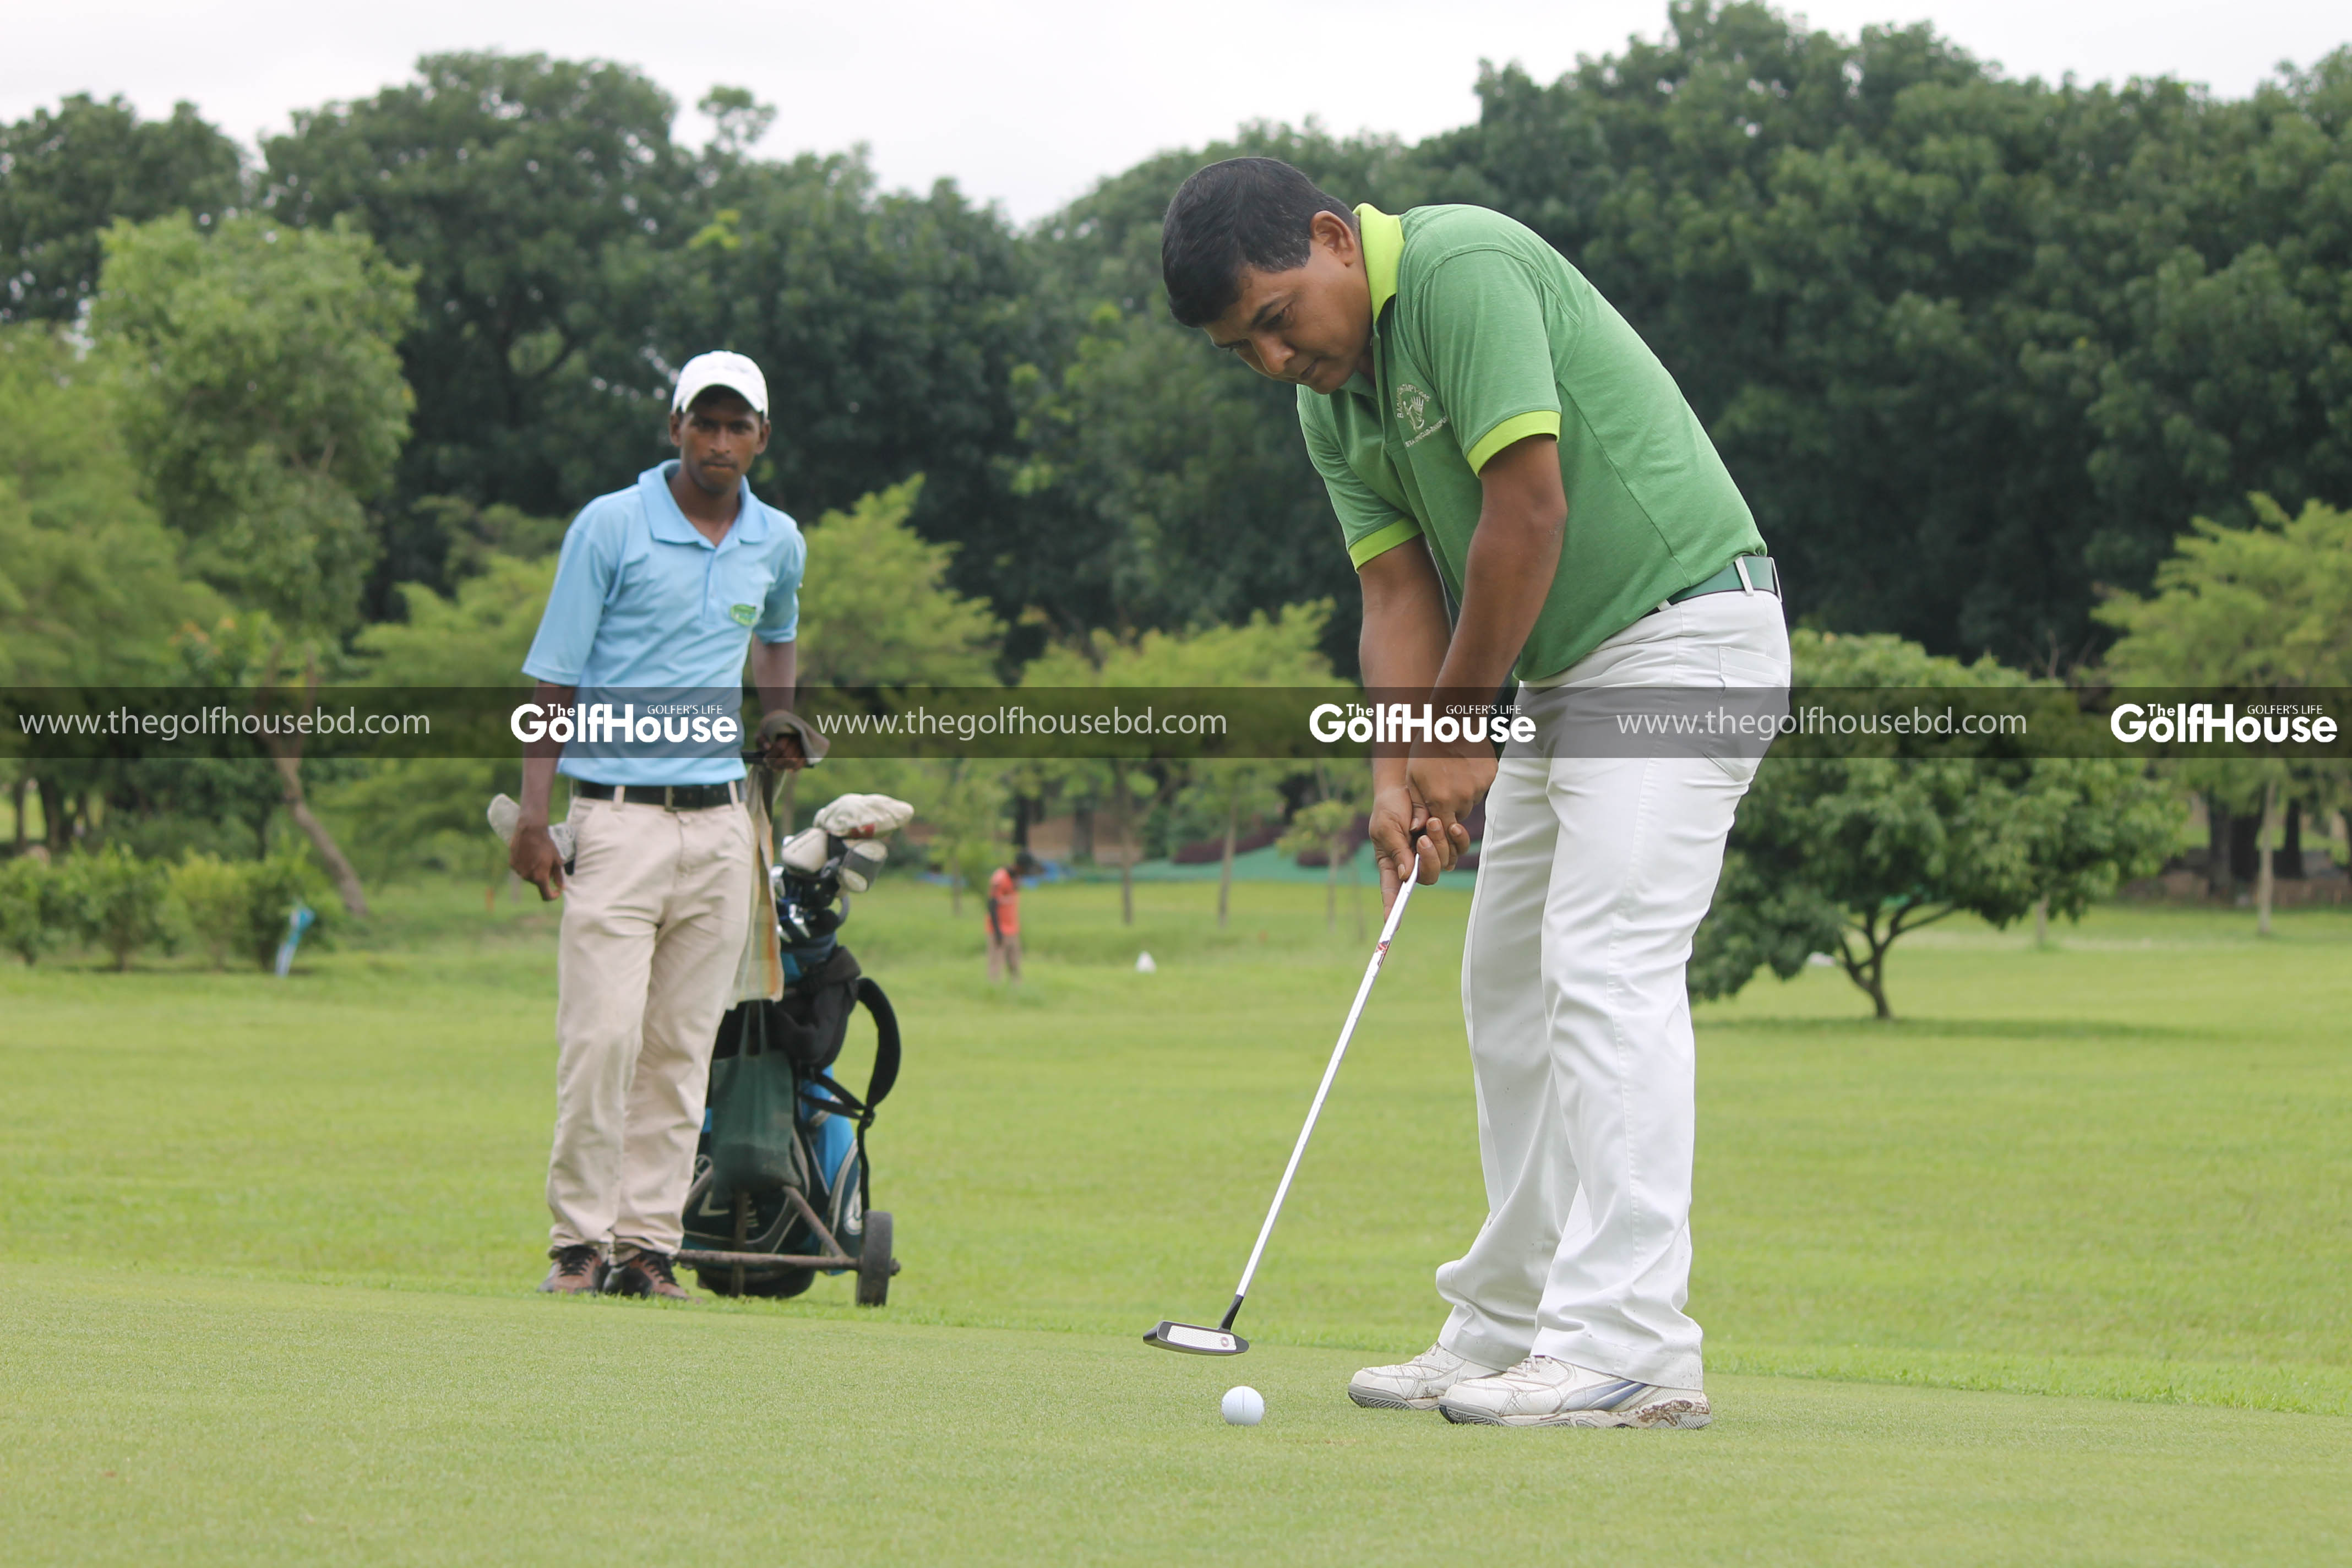 Colonel Mamun Chowdhury is a keen golfer and ex-member secretary of Rangpur Golf & Country Club. He was an integral part of the whole process of turning a marshy land in Rangpur which is now the beautiful Rangpur Golf and Country Club.